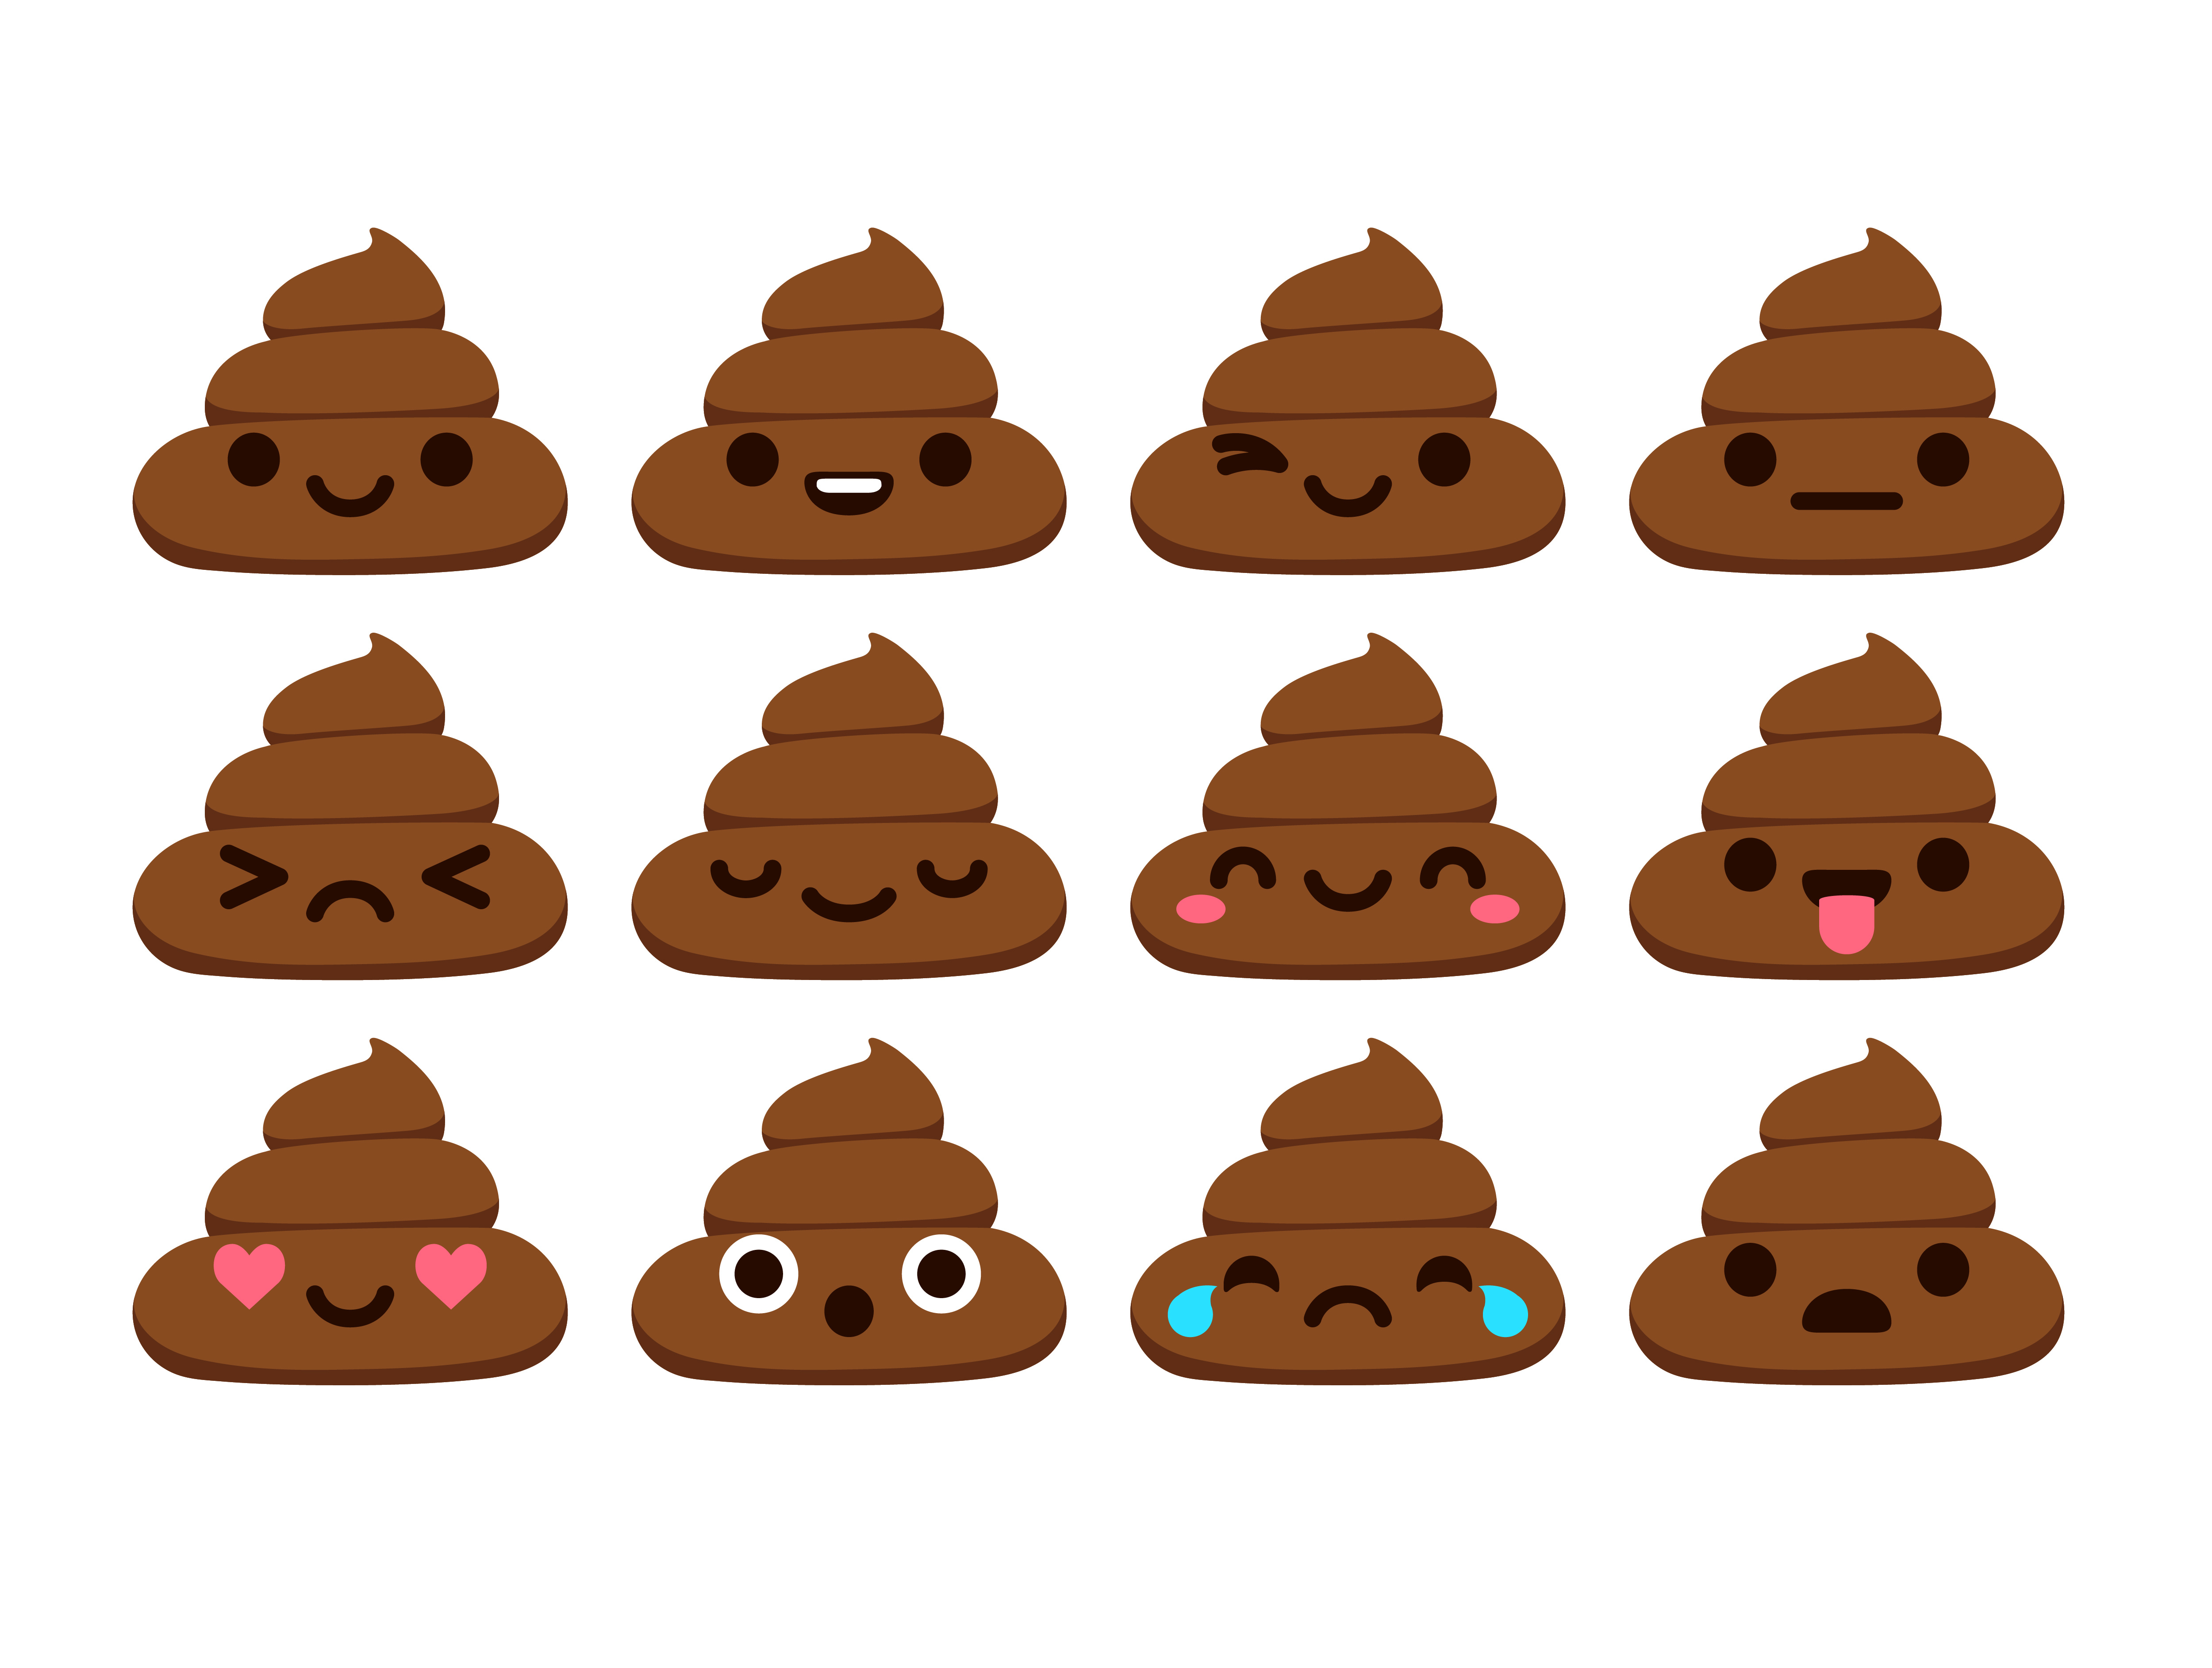 Poop emoticons - Icons.